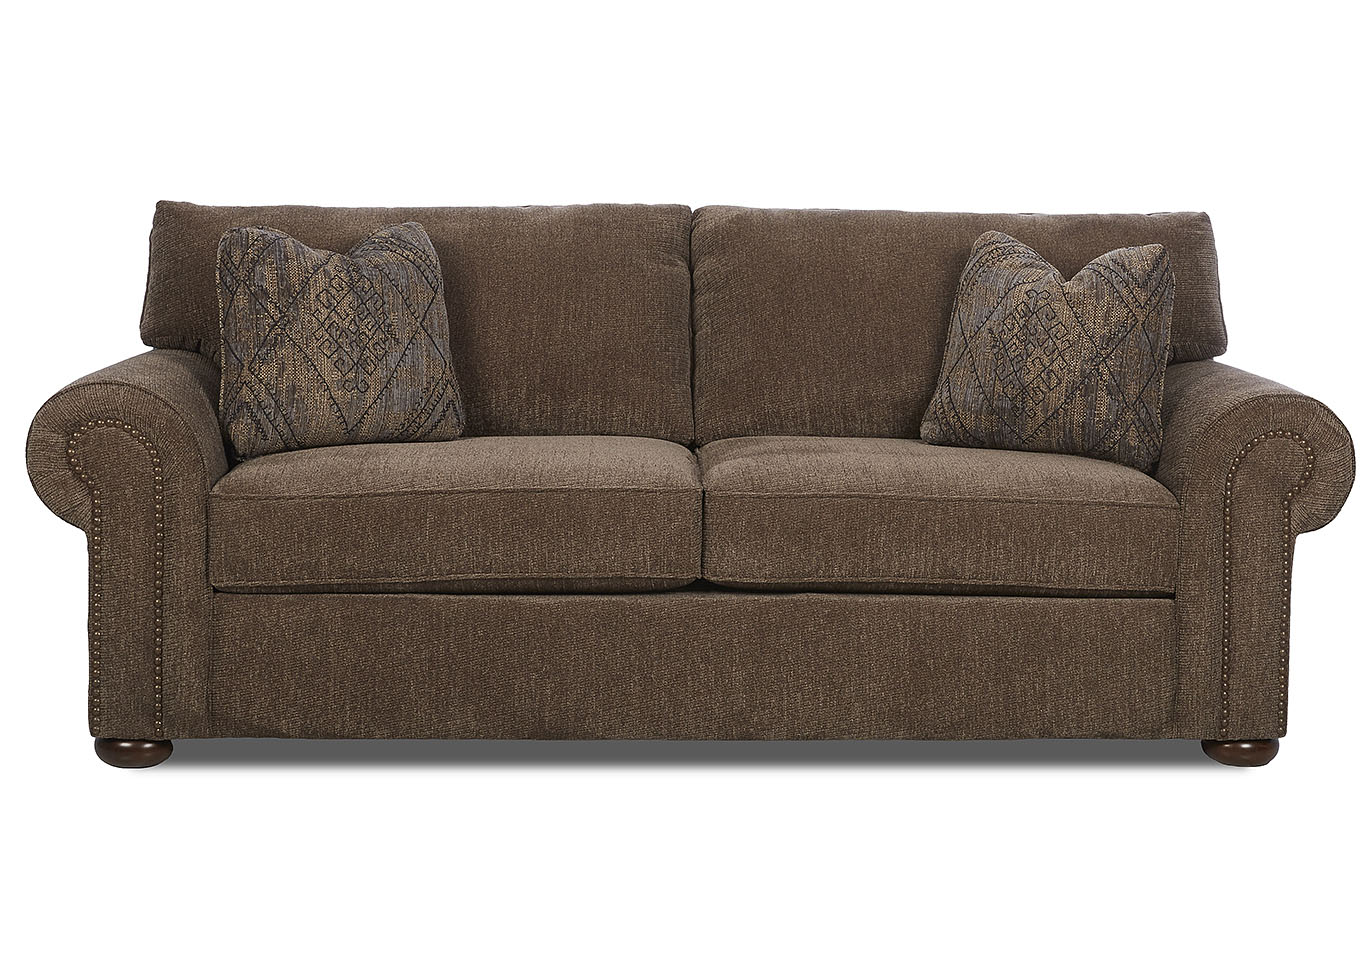 Hornell Furniture Outlet Sienna Dark Brown Fabric Sofa